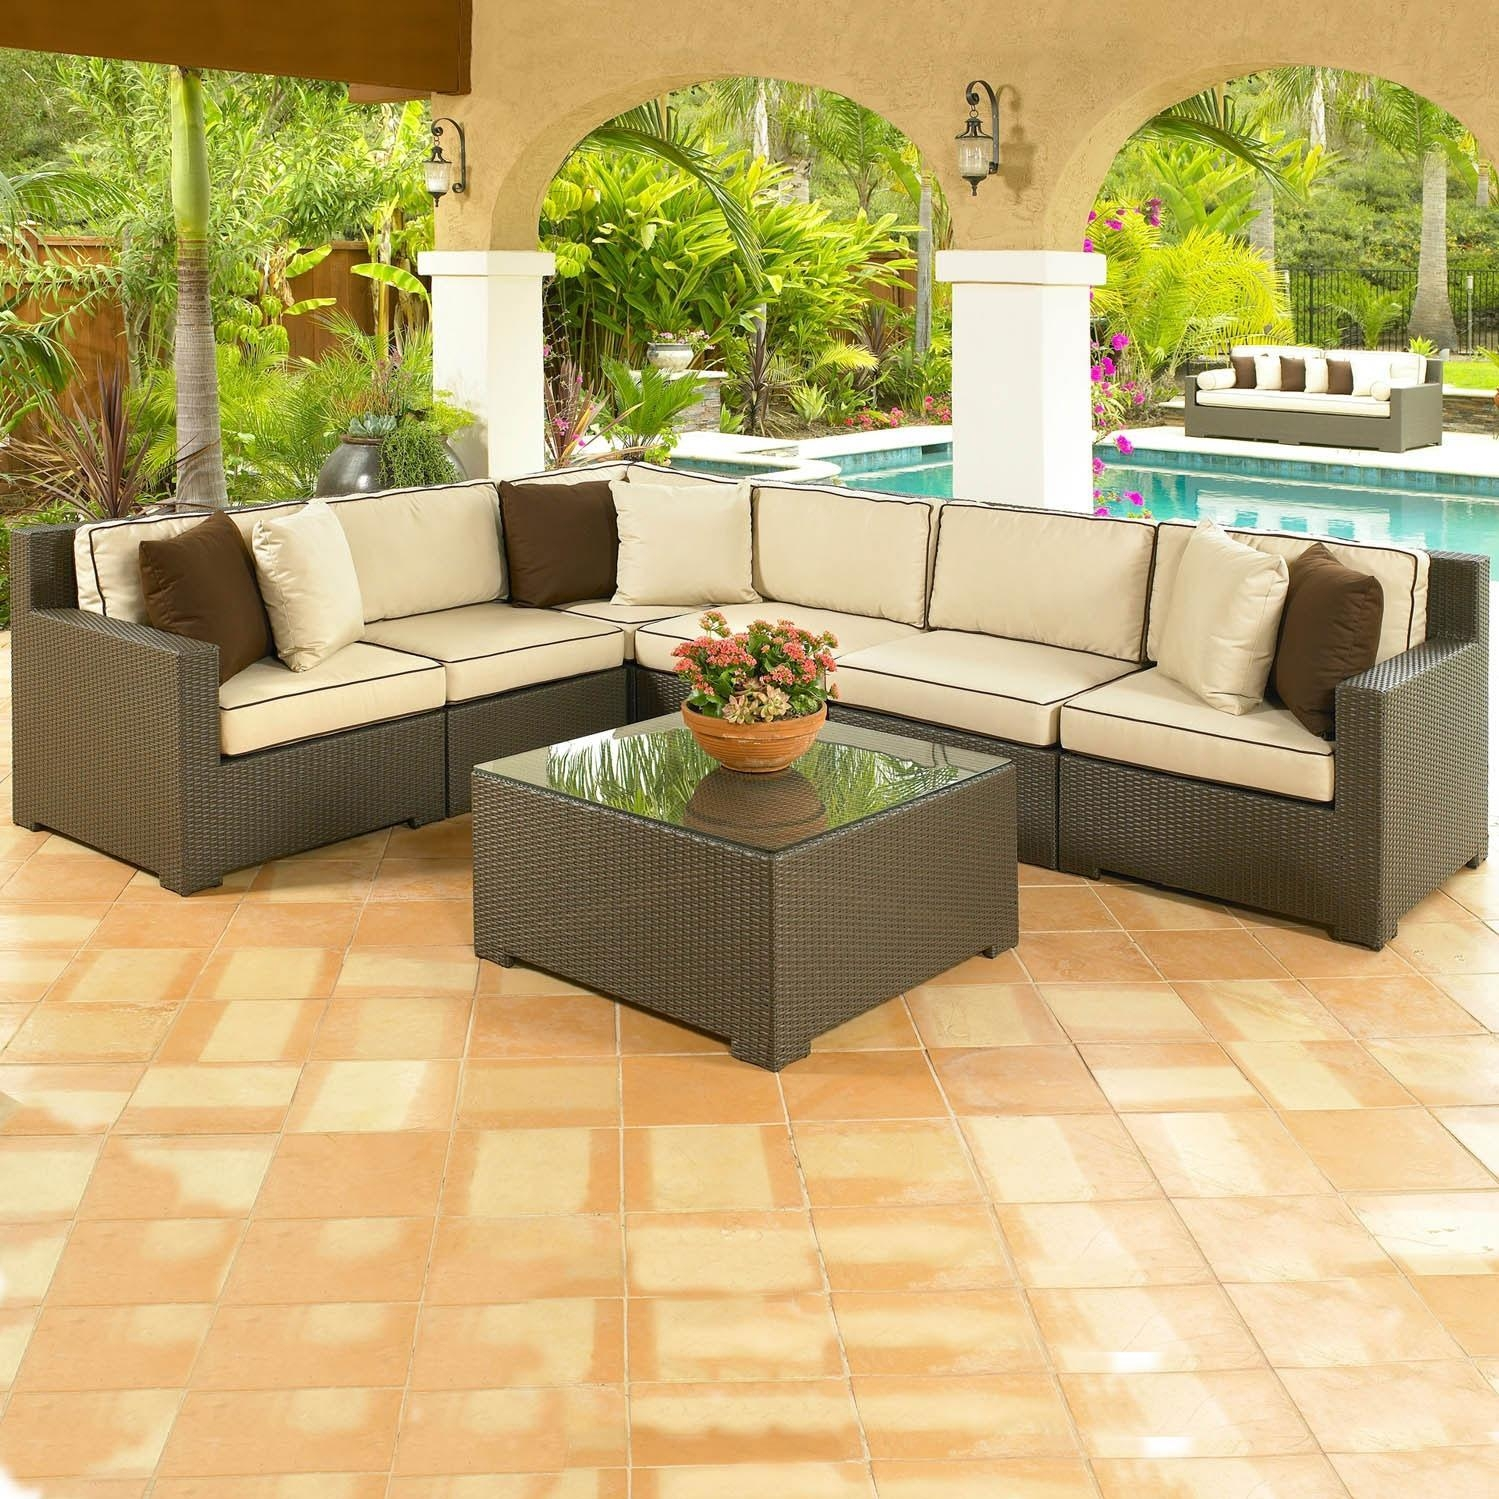 Appealing Outdoor Patio Furniture Sectional Design – Patio Regarding Cheap Outdoor Sectionals (View 14 of 15)